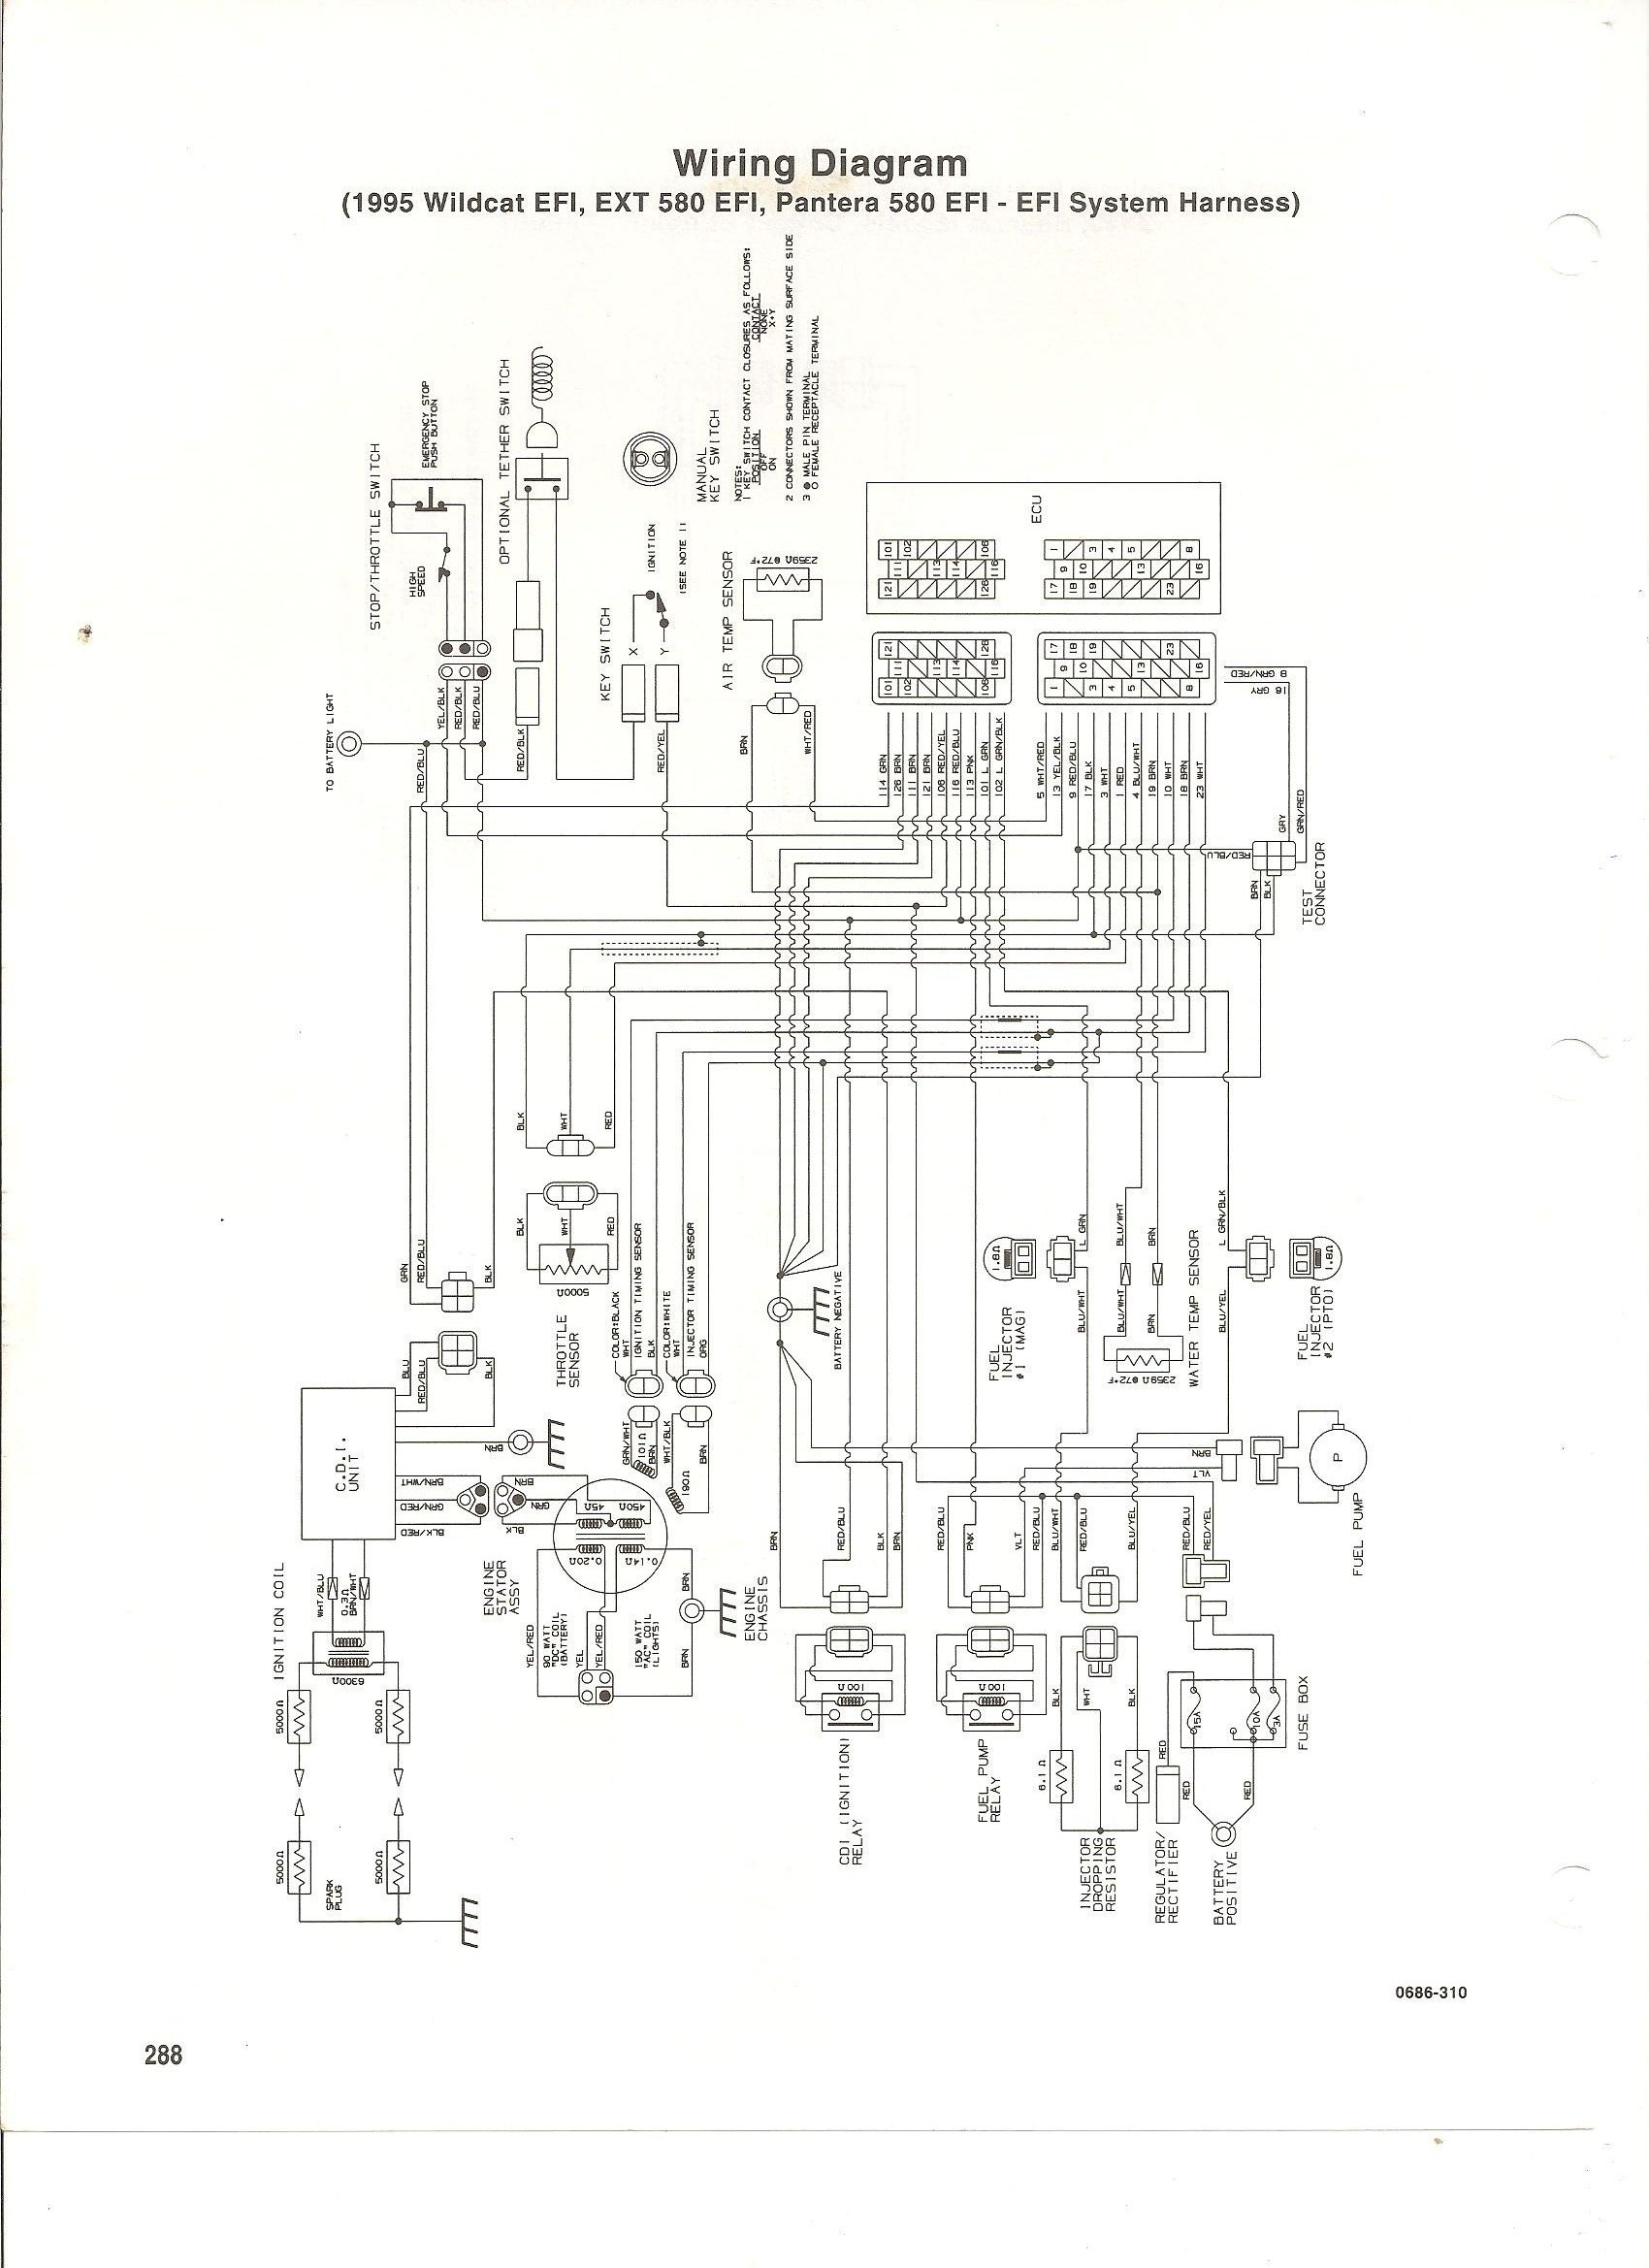 hight resolution of 93 wildcat wiring diagram wiring diagram portal gmc fuse box diagrams 1988 wildcat wiring diagram source 2006 wildcat camper